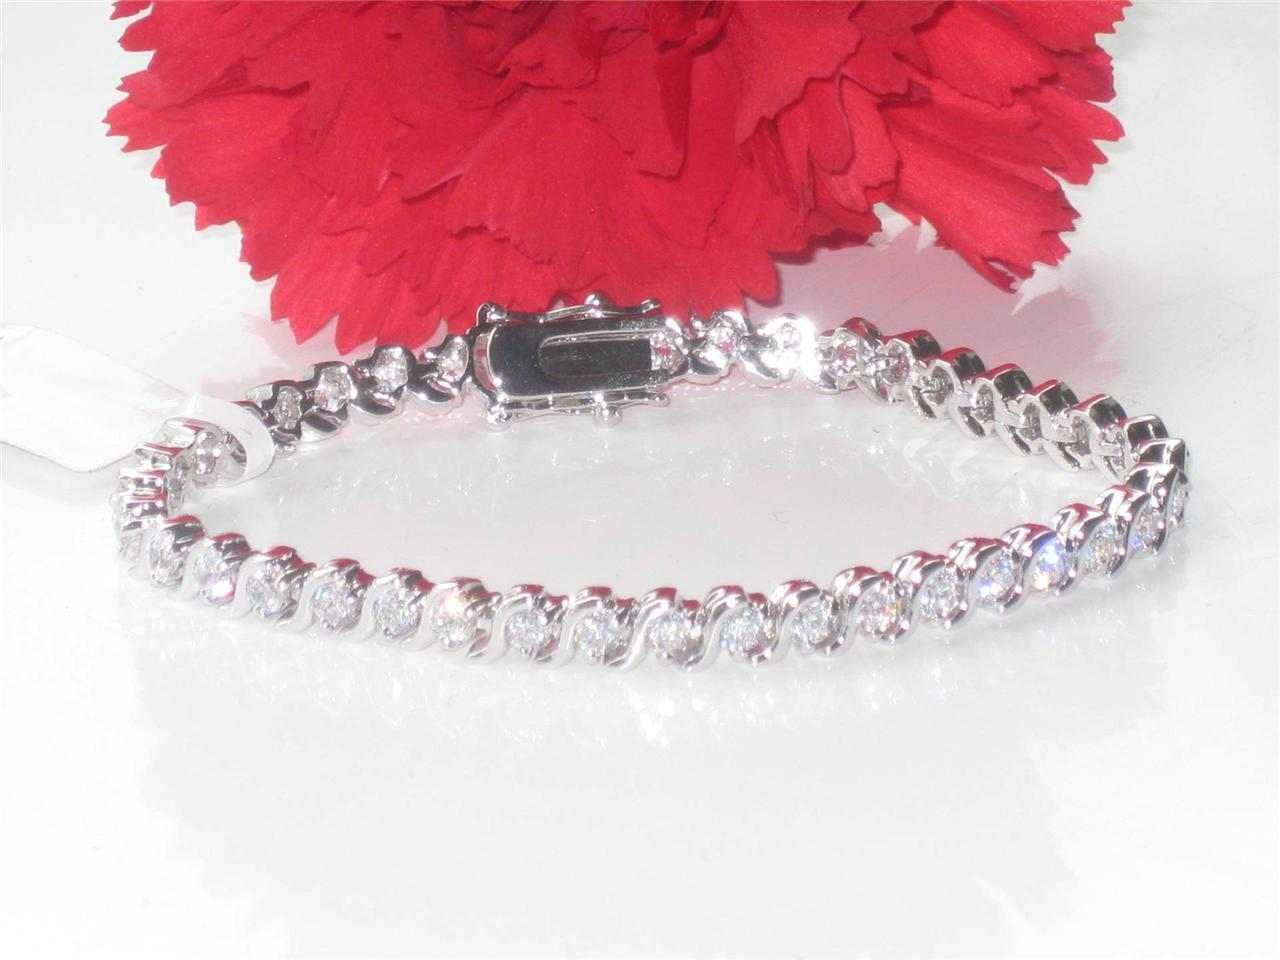 614 WOMENS WHITE 9CT S BAR TENNIS BRACELET SIMULATED DIAMONDS CLASSIC REALISTIC